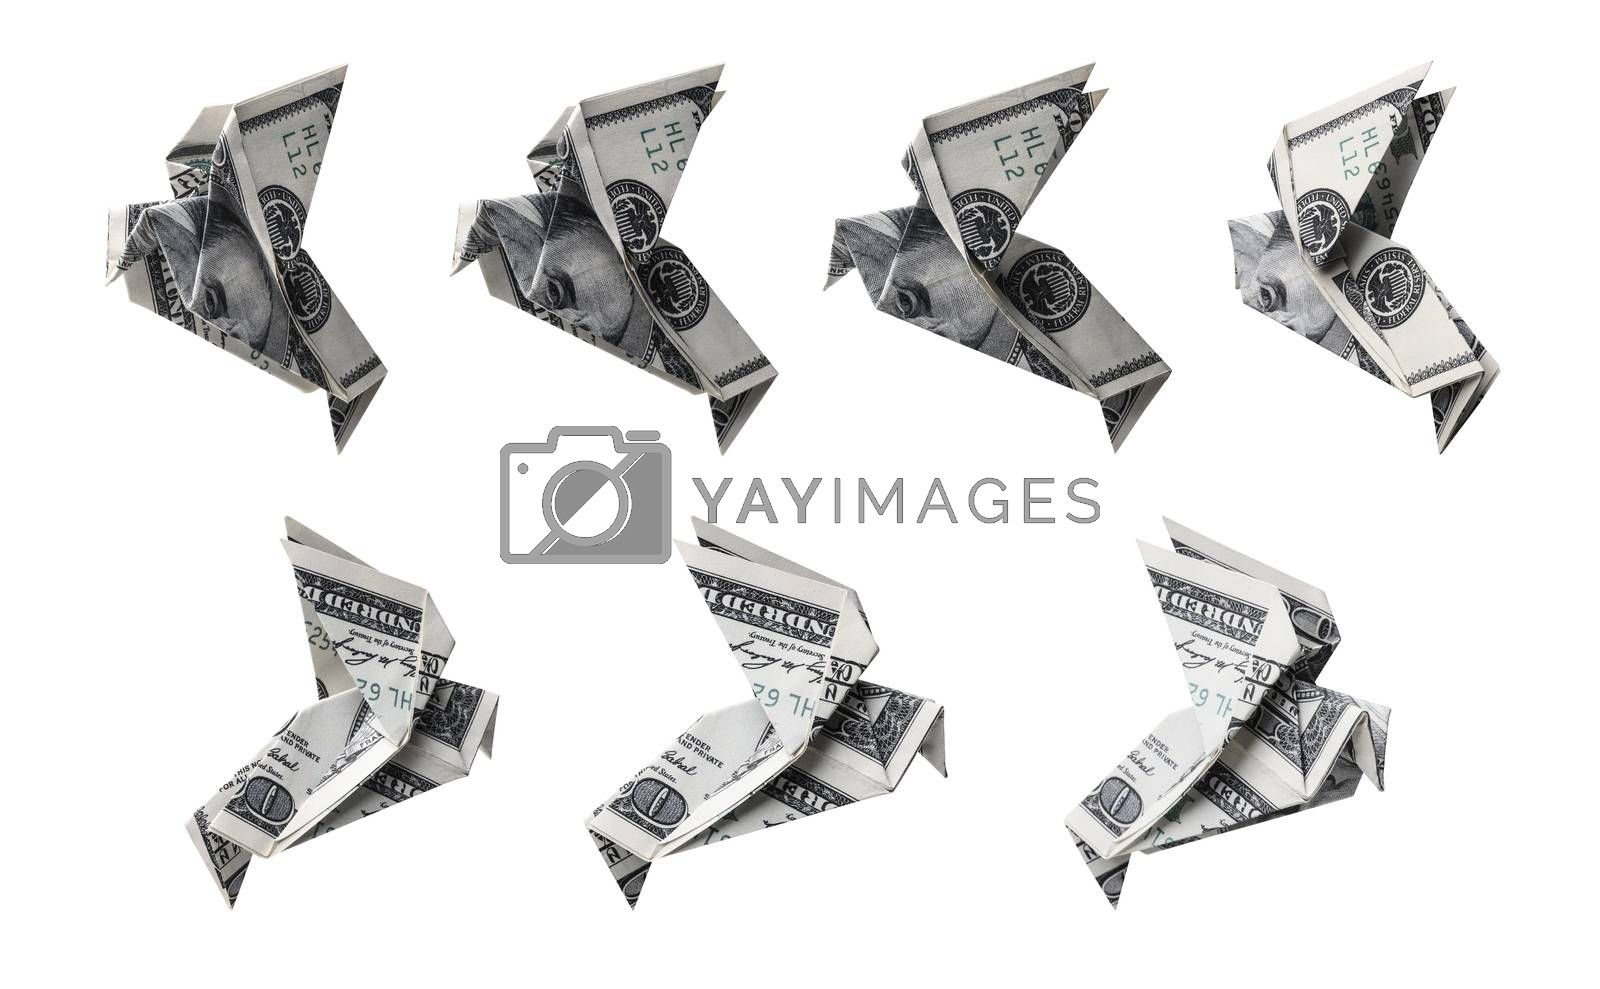 Origami set of one hundred dollar banknotes in the form of a bird in different angles.